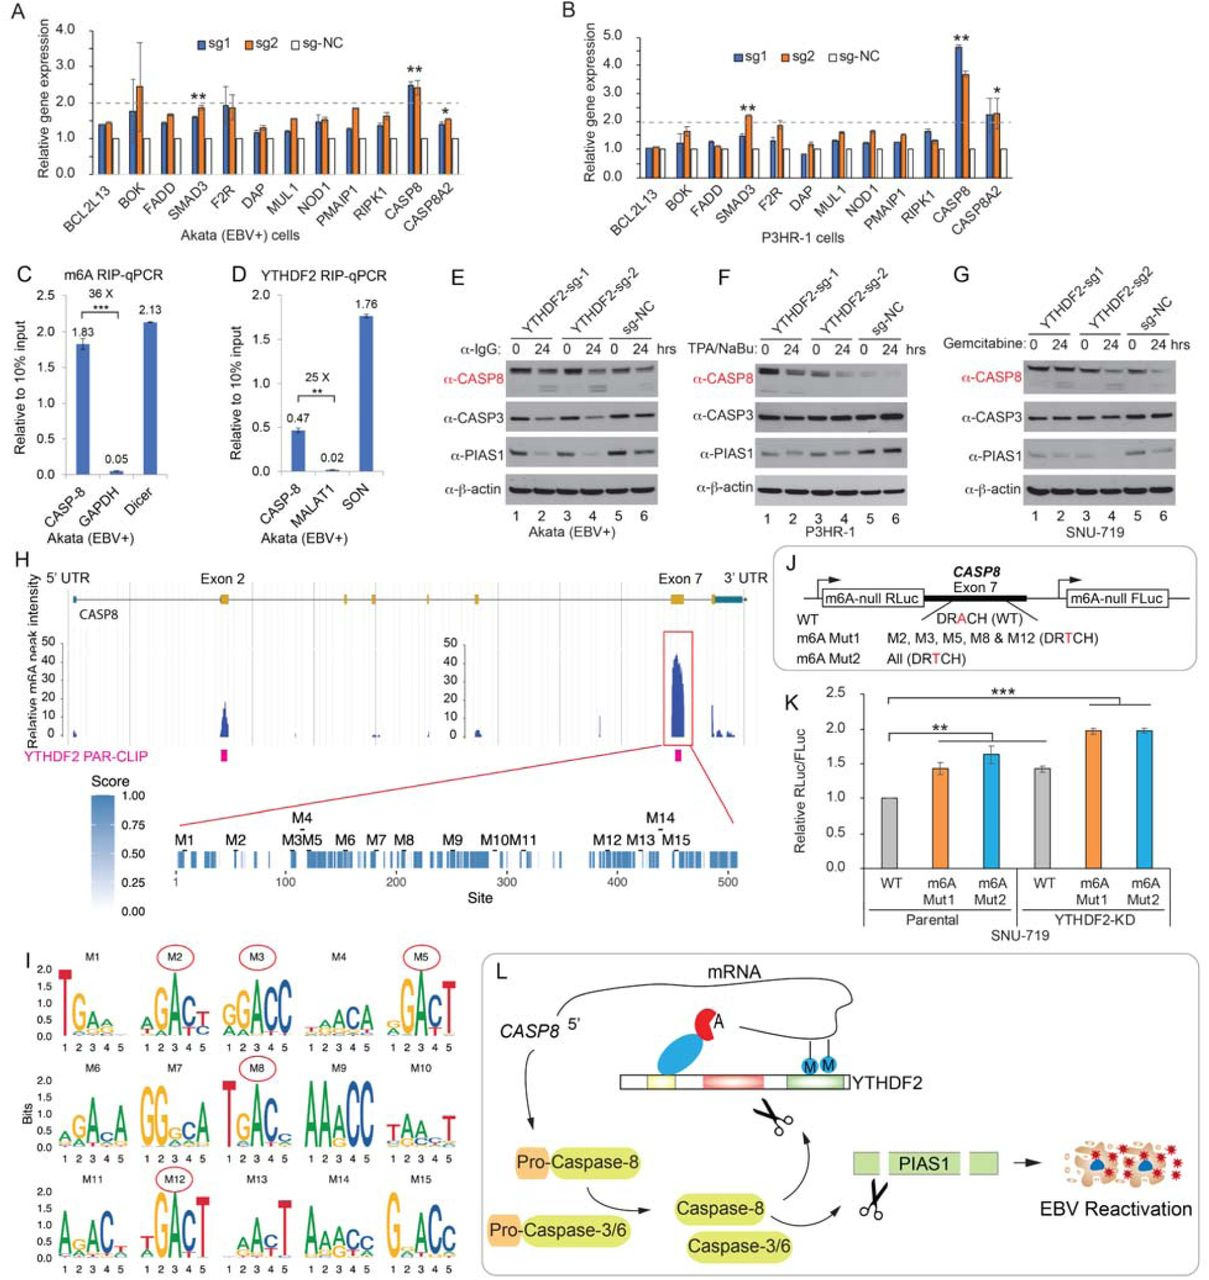 YTHDF2 regulates CASP8 mRNA stability through m 6 A modifications. (A-B) YTHDF2 depletion promotes CASP8 mRNA expression. Akata (EBV+) cells and P3HR-1 cells carrying different sgRNA targeting YTHDF2 or control (sg-NC) were used to extract total RNA and qPCR analyses were performed a group of YTHDF2-targeted cellular genes involved in caspase activation. The values were normalized with a non YTHDF2 target HPRT1 . The values of sg-NC were set as 1. (C-D) CASP8 is modified by m 6 A and YTHDF2 binding to CASP8 . Akata (EBV+) cells were used to perform m6A RIP-qPCR (C) and YTHDF2 RIP-qPCR (D), respectively. Values are displayed as fold change over 10% input. (E-G) YTHDF2 depletion promotes caspase-8 protein expression and PIAS1 cleavage upon lytic i nduction. Akata (EBV+) cells (E), P3HR-1 cells (F) and SNU-719 cells (G) carrying different sgRNA targeting YTHDF2 or control (sg-NC) were lytically induced by anti-IgG, TPA and sodium butyrate (NaBu) and gemcitabine treatment for 24 hrs. Protein expression was monitored by Western Blot using antibodies as indicated. (H) CASP8 m 6 A peaks were extracted from MeT-DB V2.0 database. YTHDF2-PAR-CLIP data were retrieved from Wang et al.( Wang et al., 2014 ). The Exon-7 of CASP8 with highest m 6 A peaks were analyzed for conservation among sequences derived from 100 vertebrate species. 15 potential m 6 A motifs (M1-M15) were extracted based on m 6 A motif DRACH. (I) Motif logos were generated for 15 individual sites. Red cycles denote highly conserved motifs (M2, M3, M5, M8 and M12) across 100 vertebrate species. (J-K) WT and mutant CASP8 -Exon-7 were cloned into the m 6 A-null Renilla luciferase (RLuc) reporter (3'UTR region) that also express Firefly luciferase (FLuc) from a separate promoter (J). These three reporter plasmids were transfected into parental or YTHDF2-depleted (YTHDF2 KD) SNU719 cells. Relative Renilla to Filefly luciferase activity (RLuc/FLuc) was calculated (K). The value of WT in parental cells was set as 1. (